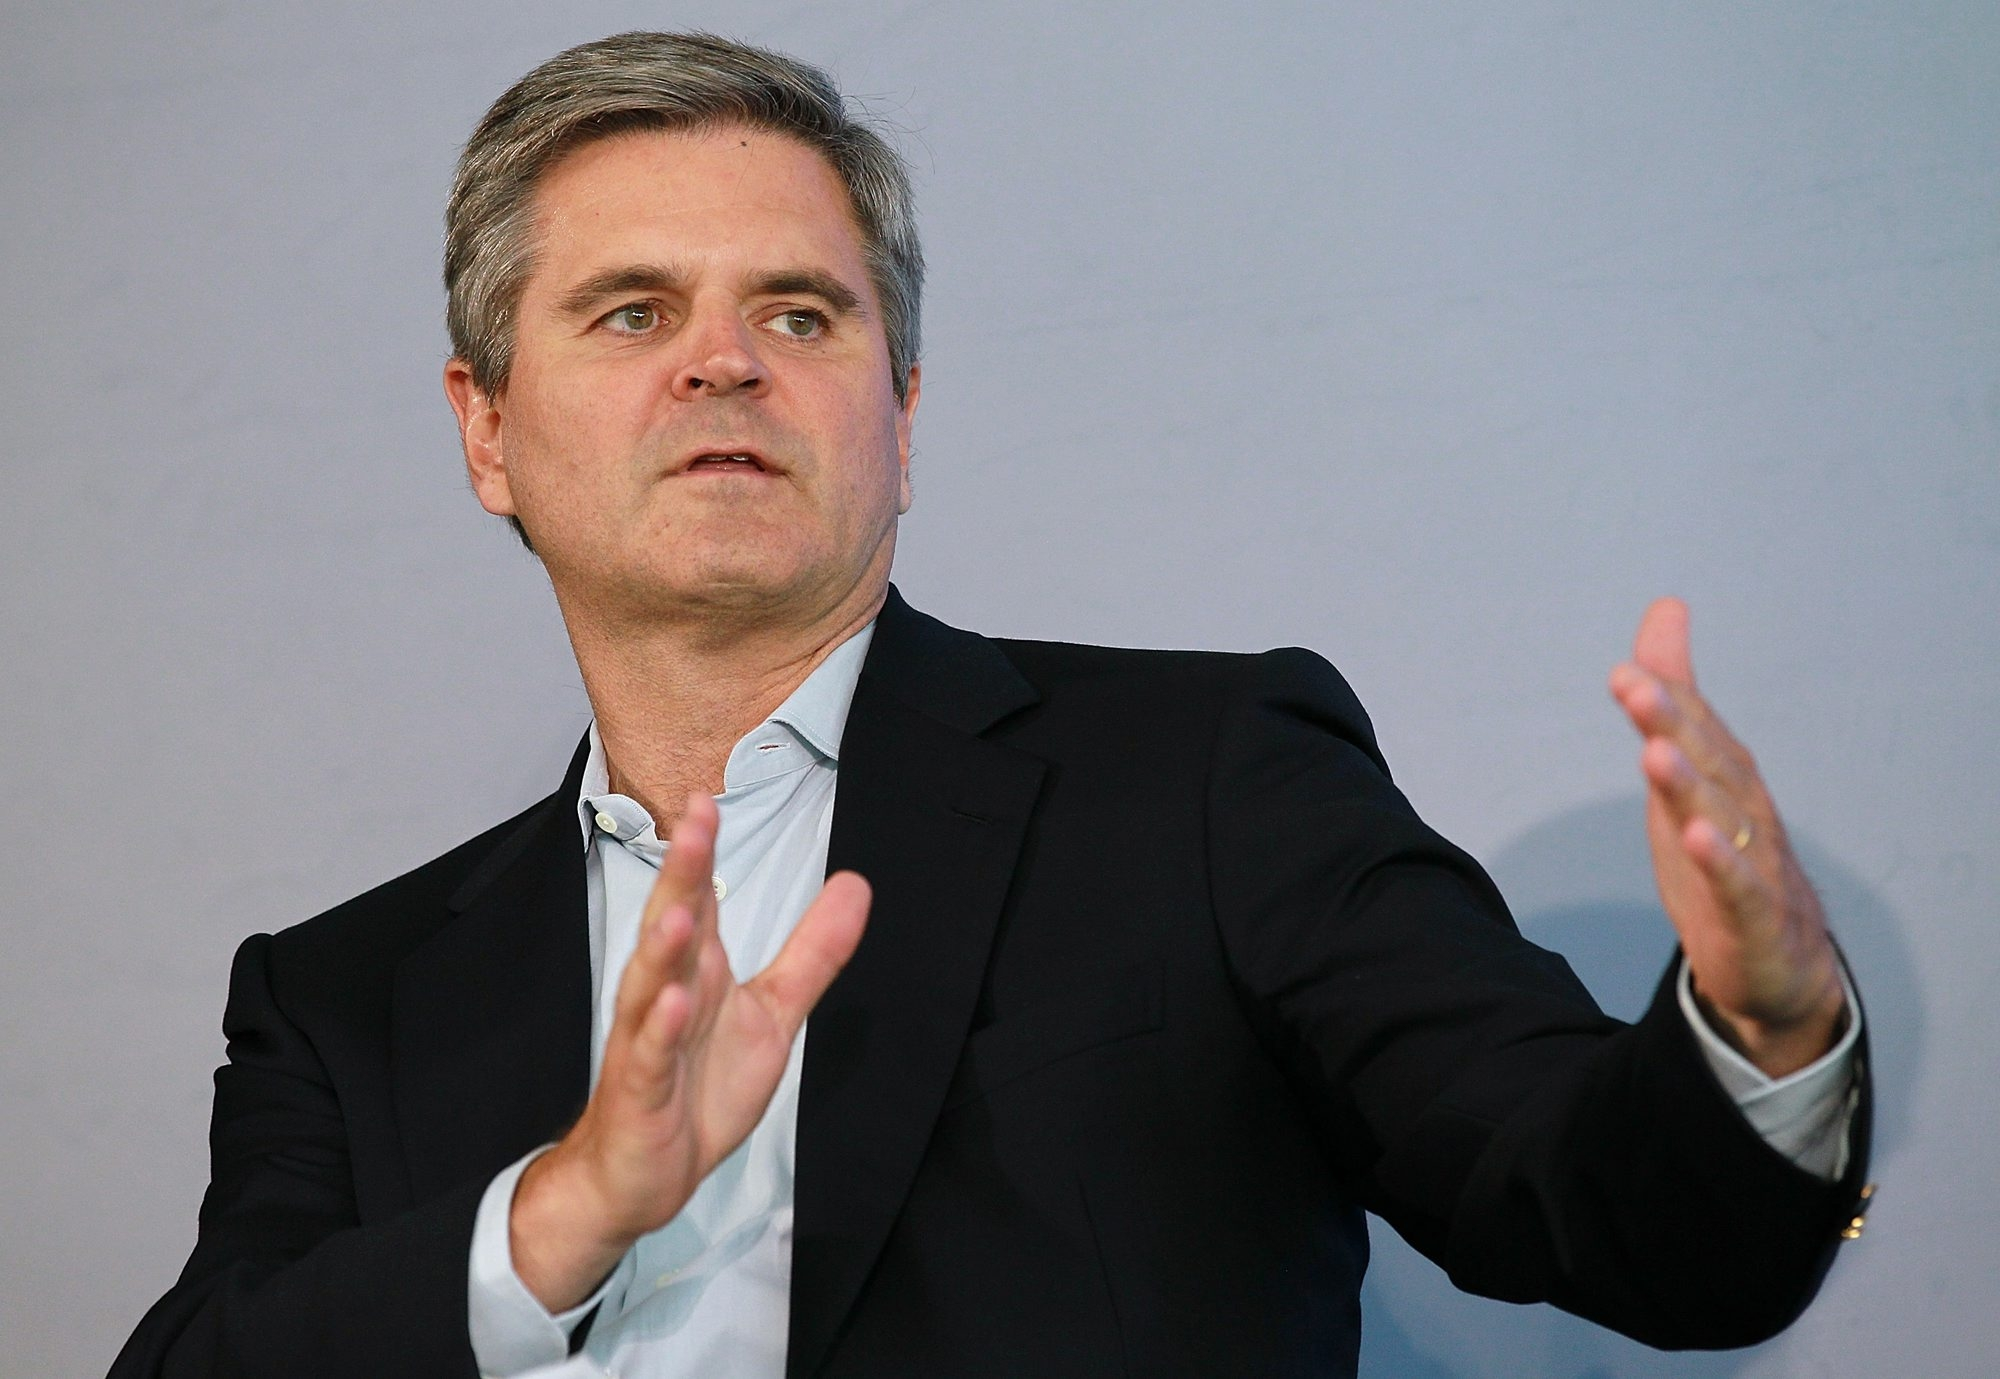 AOL co-founder Steve Case will give Buffalo companies the chance to win $100,000 in startup funds.